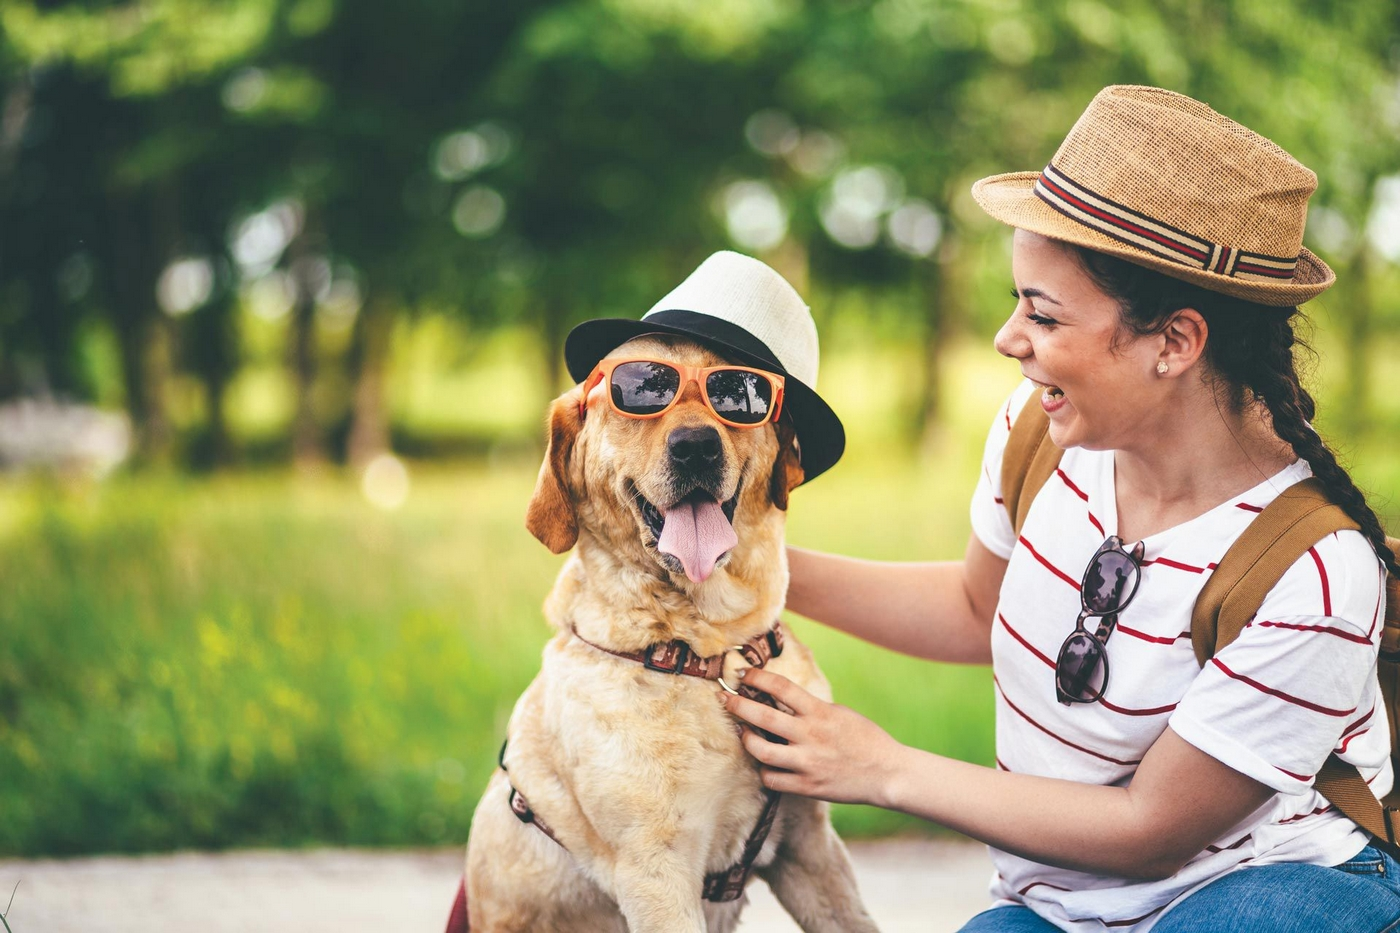 Happy dog with sunglasses and hat